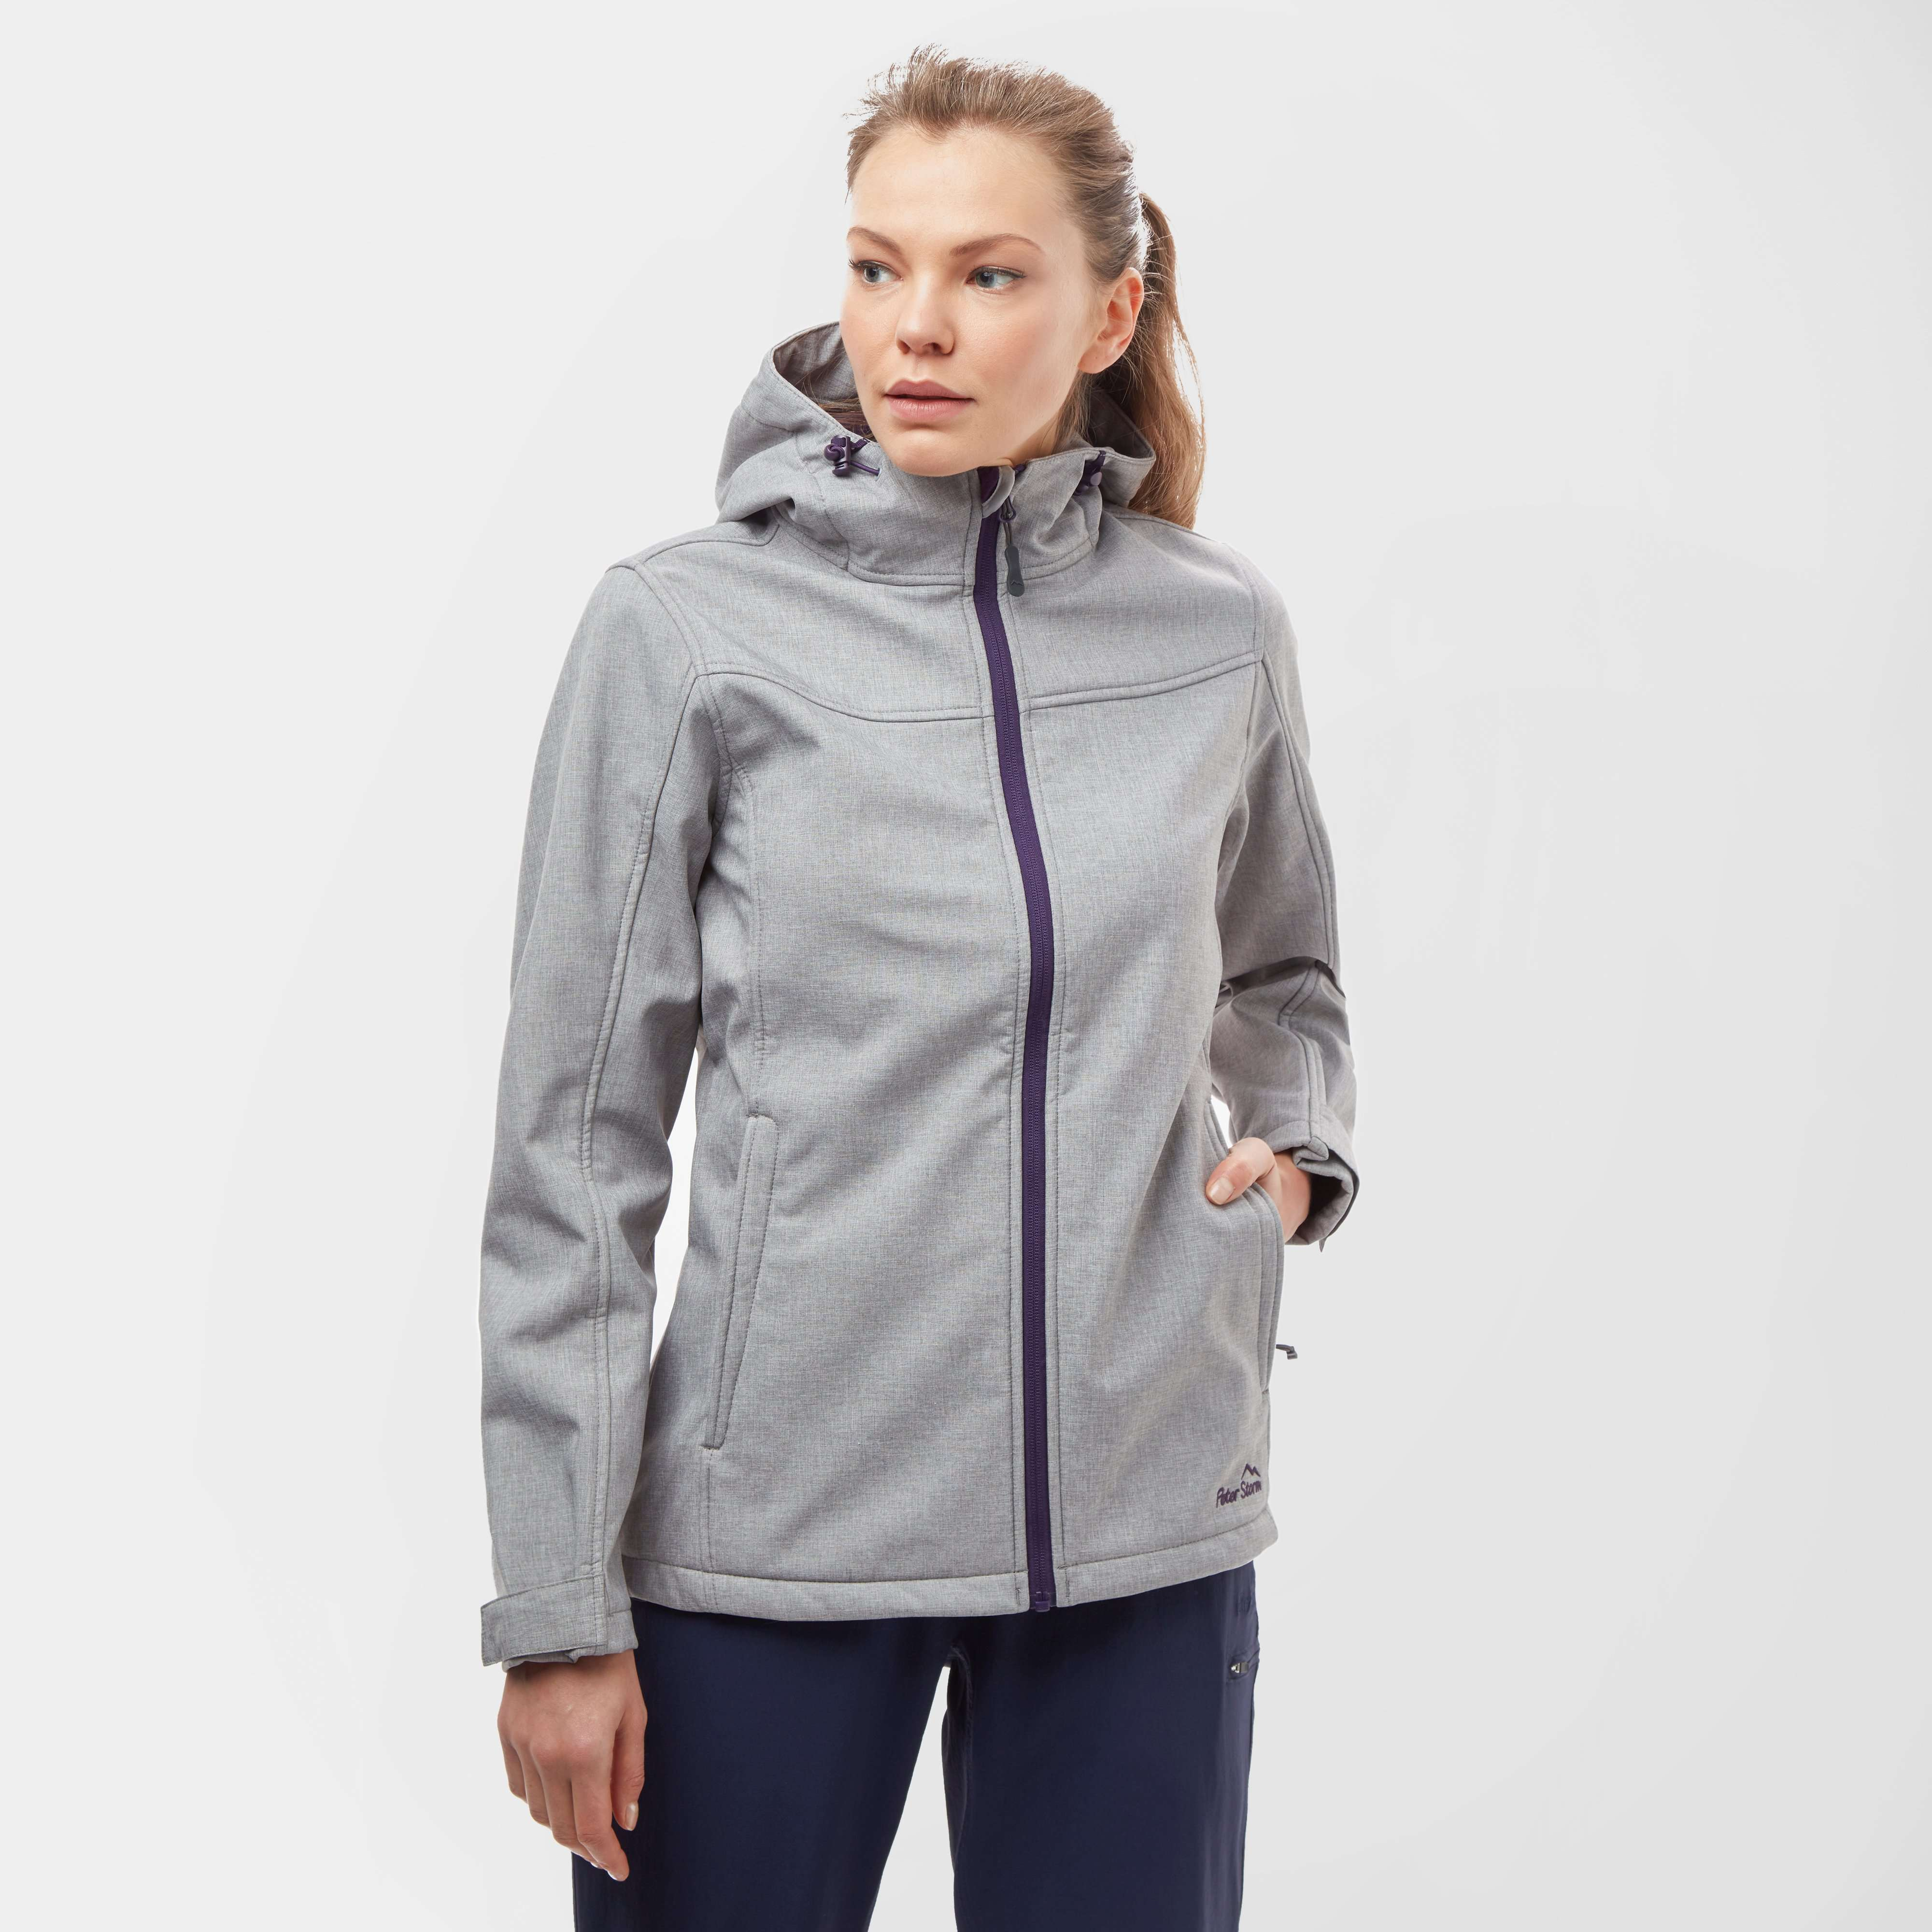 PETER STORM Women's Hooded Marl Softshell